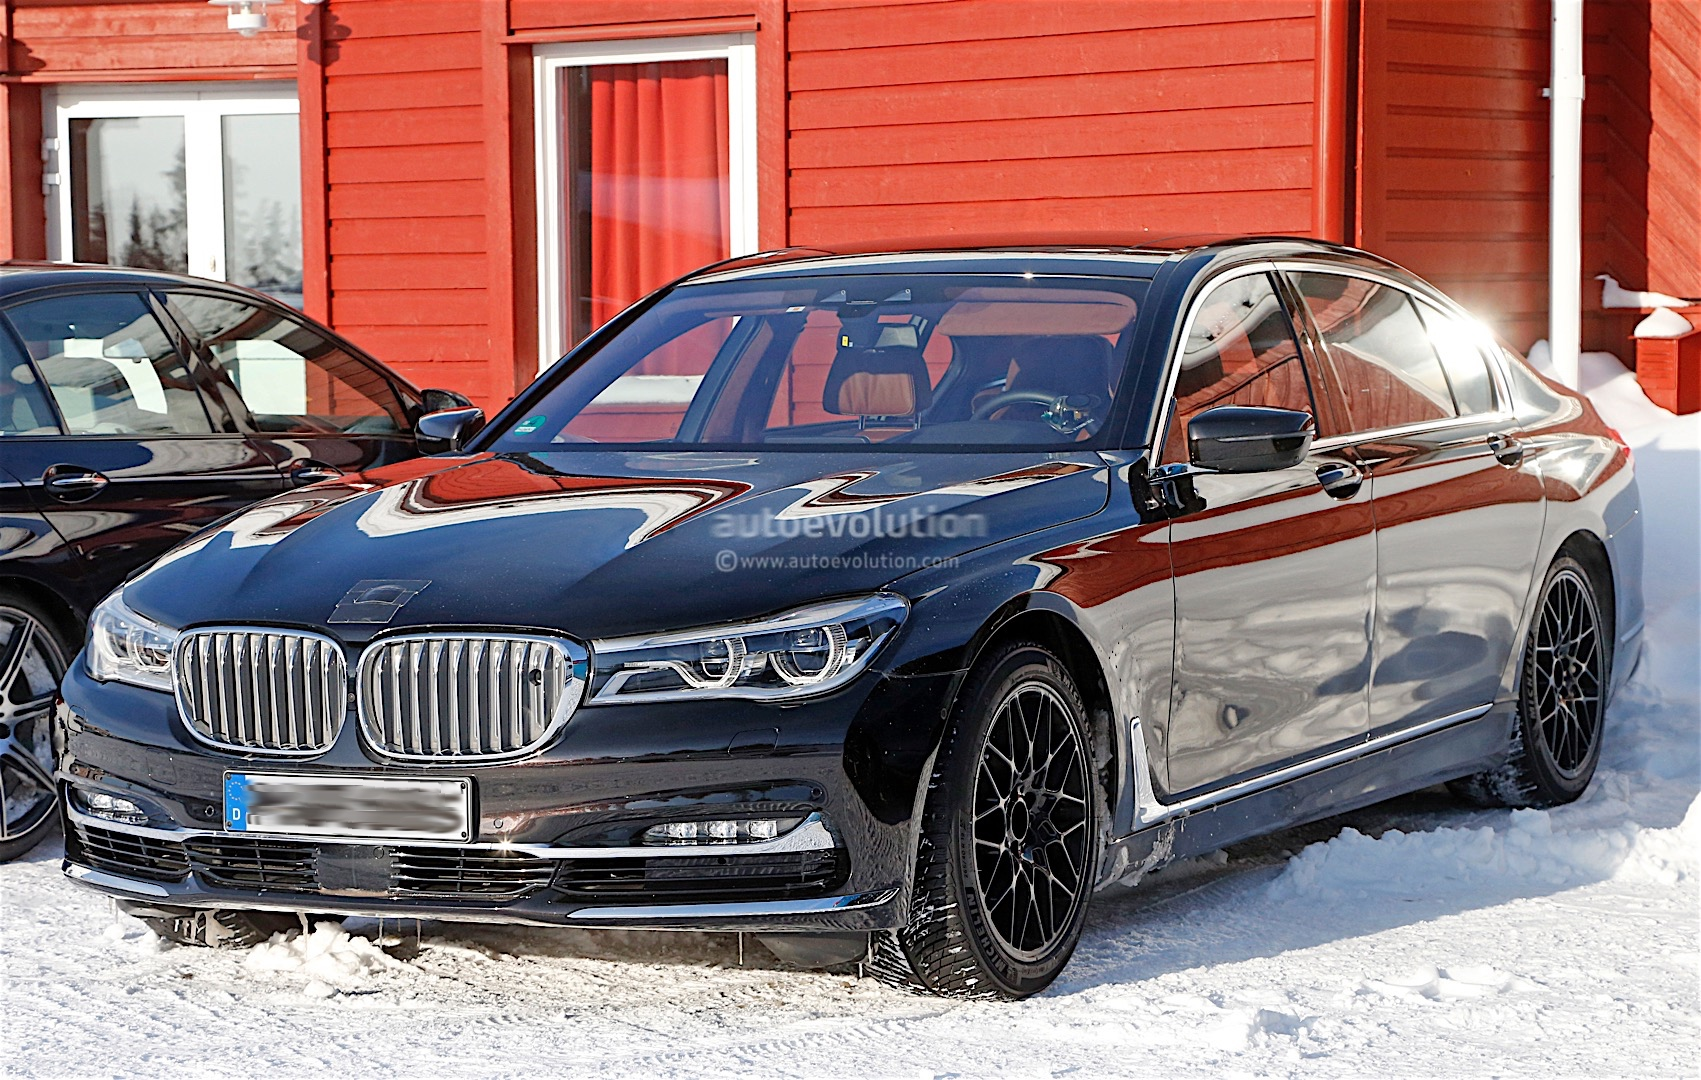 2018 Bmw M7 Prototype Revealed In Latest Spyshots